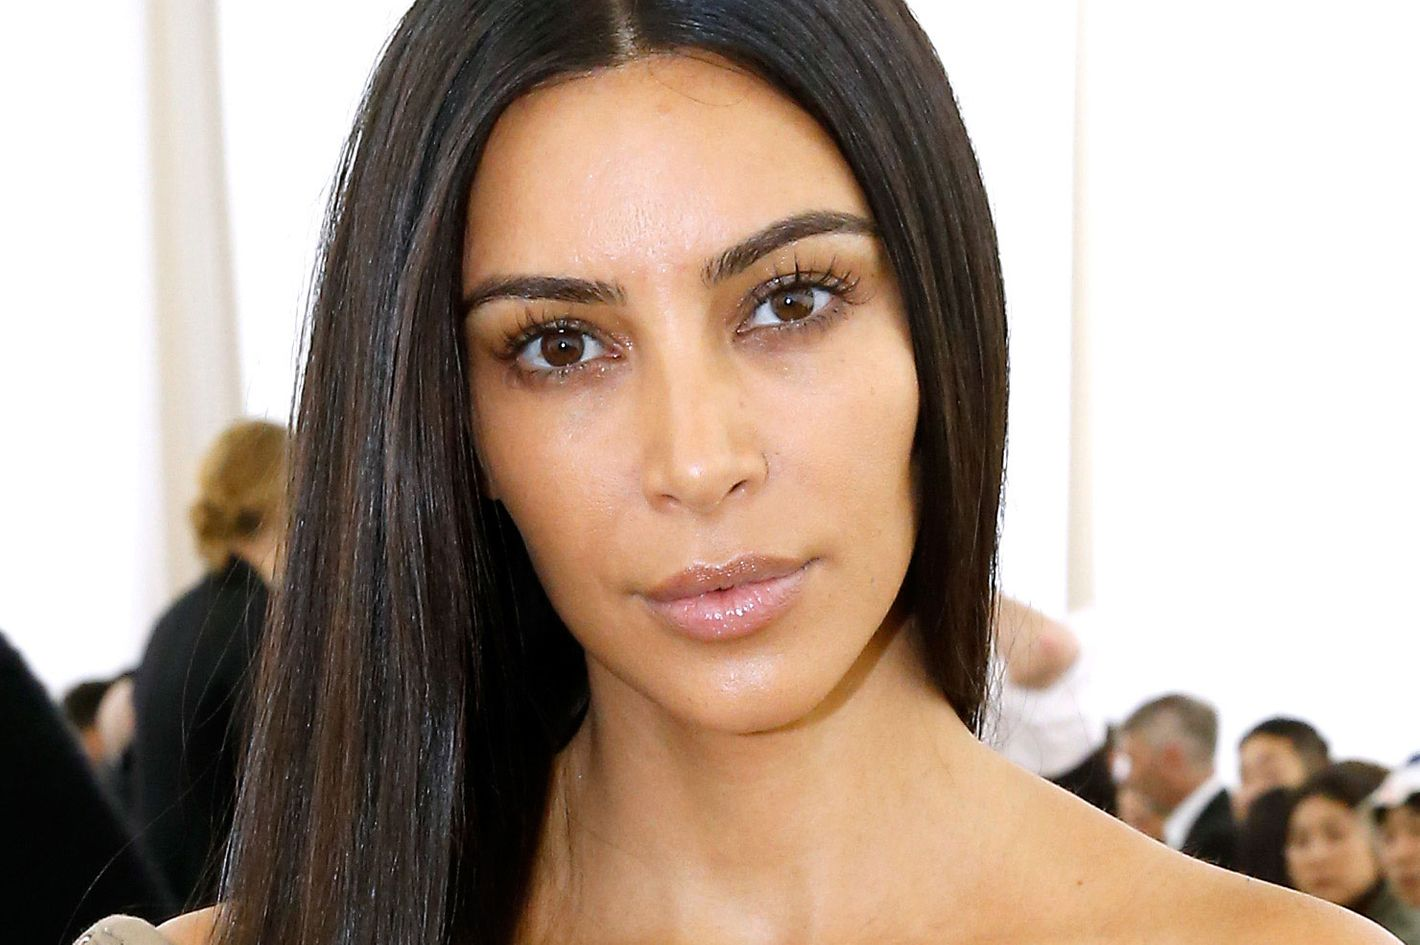 Kim Kardashian Went to a Fashion Show Without Any Makeup